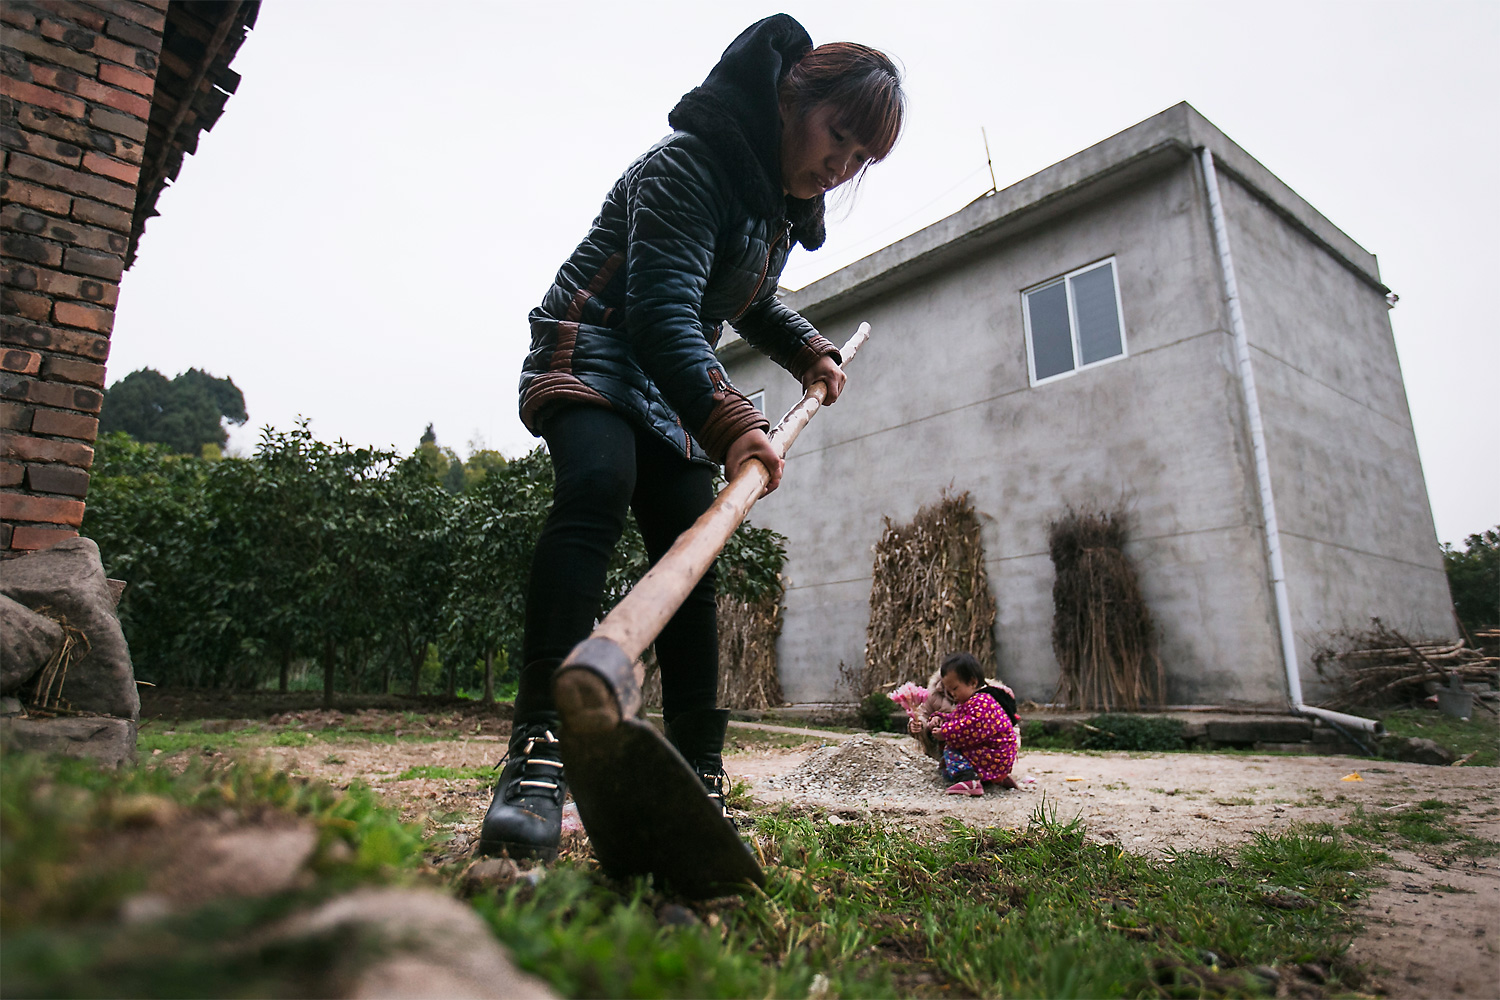 Ning Xianfang pulls weeds in front of her home, Longjing village, March 5, 2015. Li Mingjin's mother has a seriously hunched back, so she can't help much with chores.